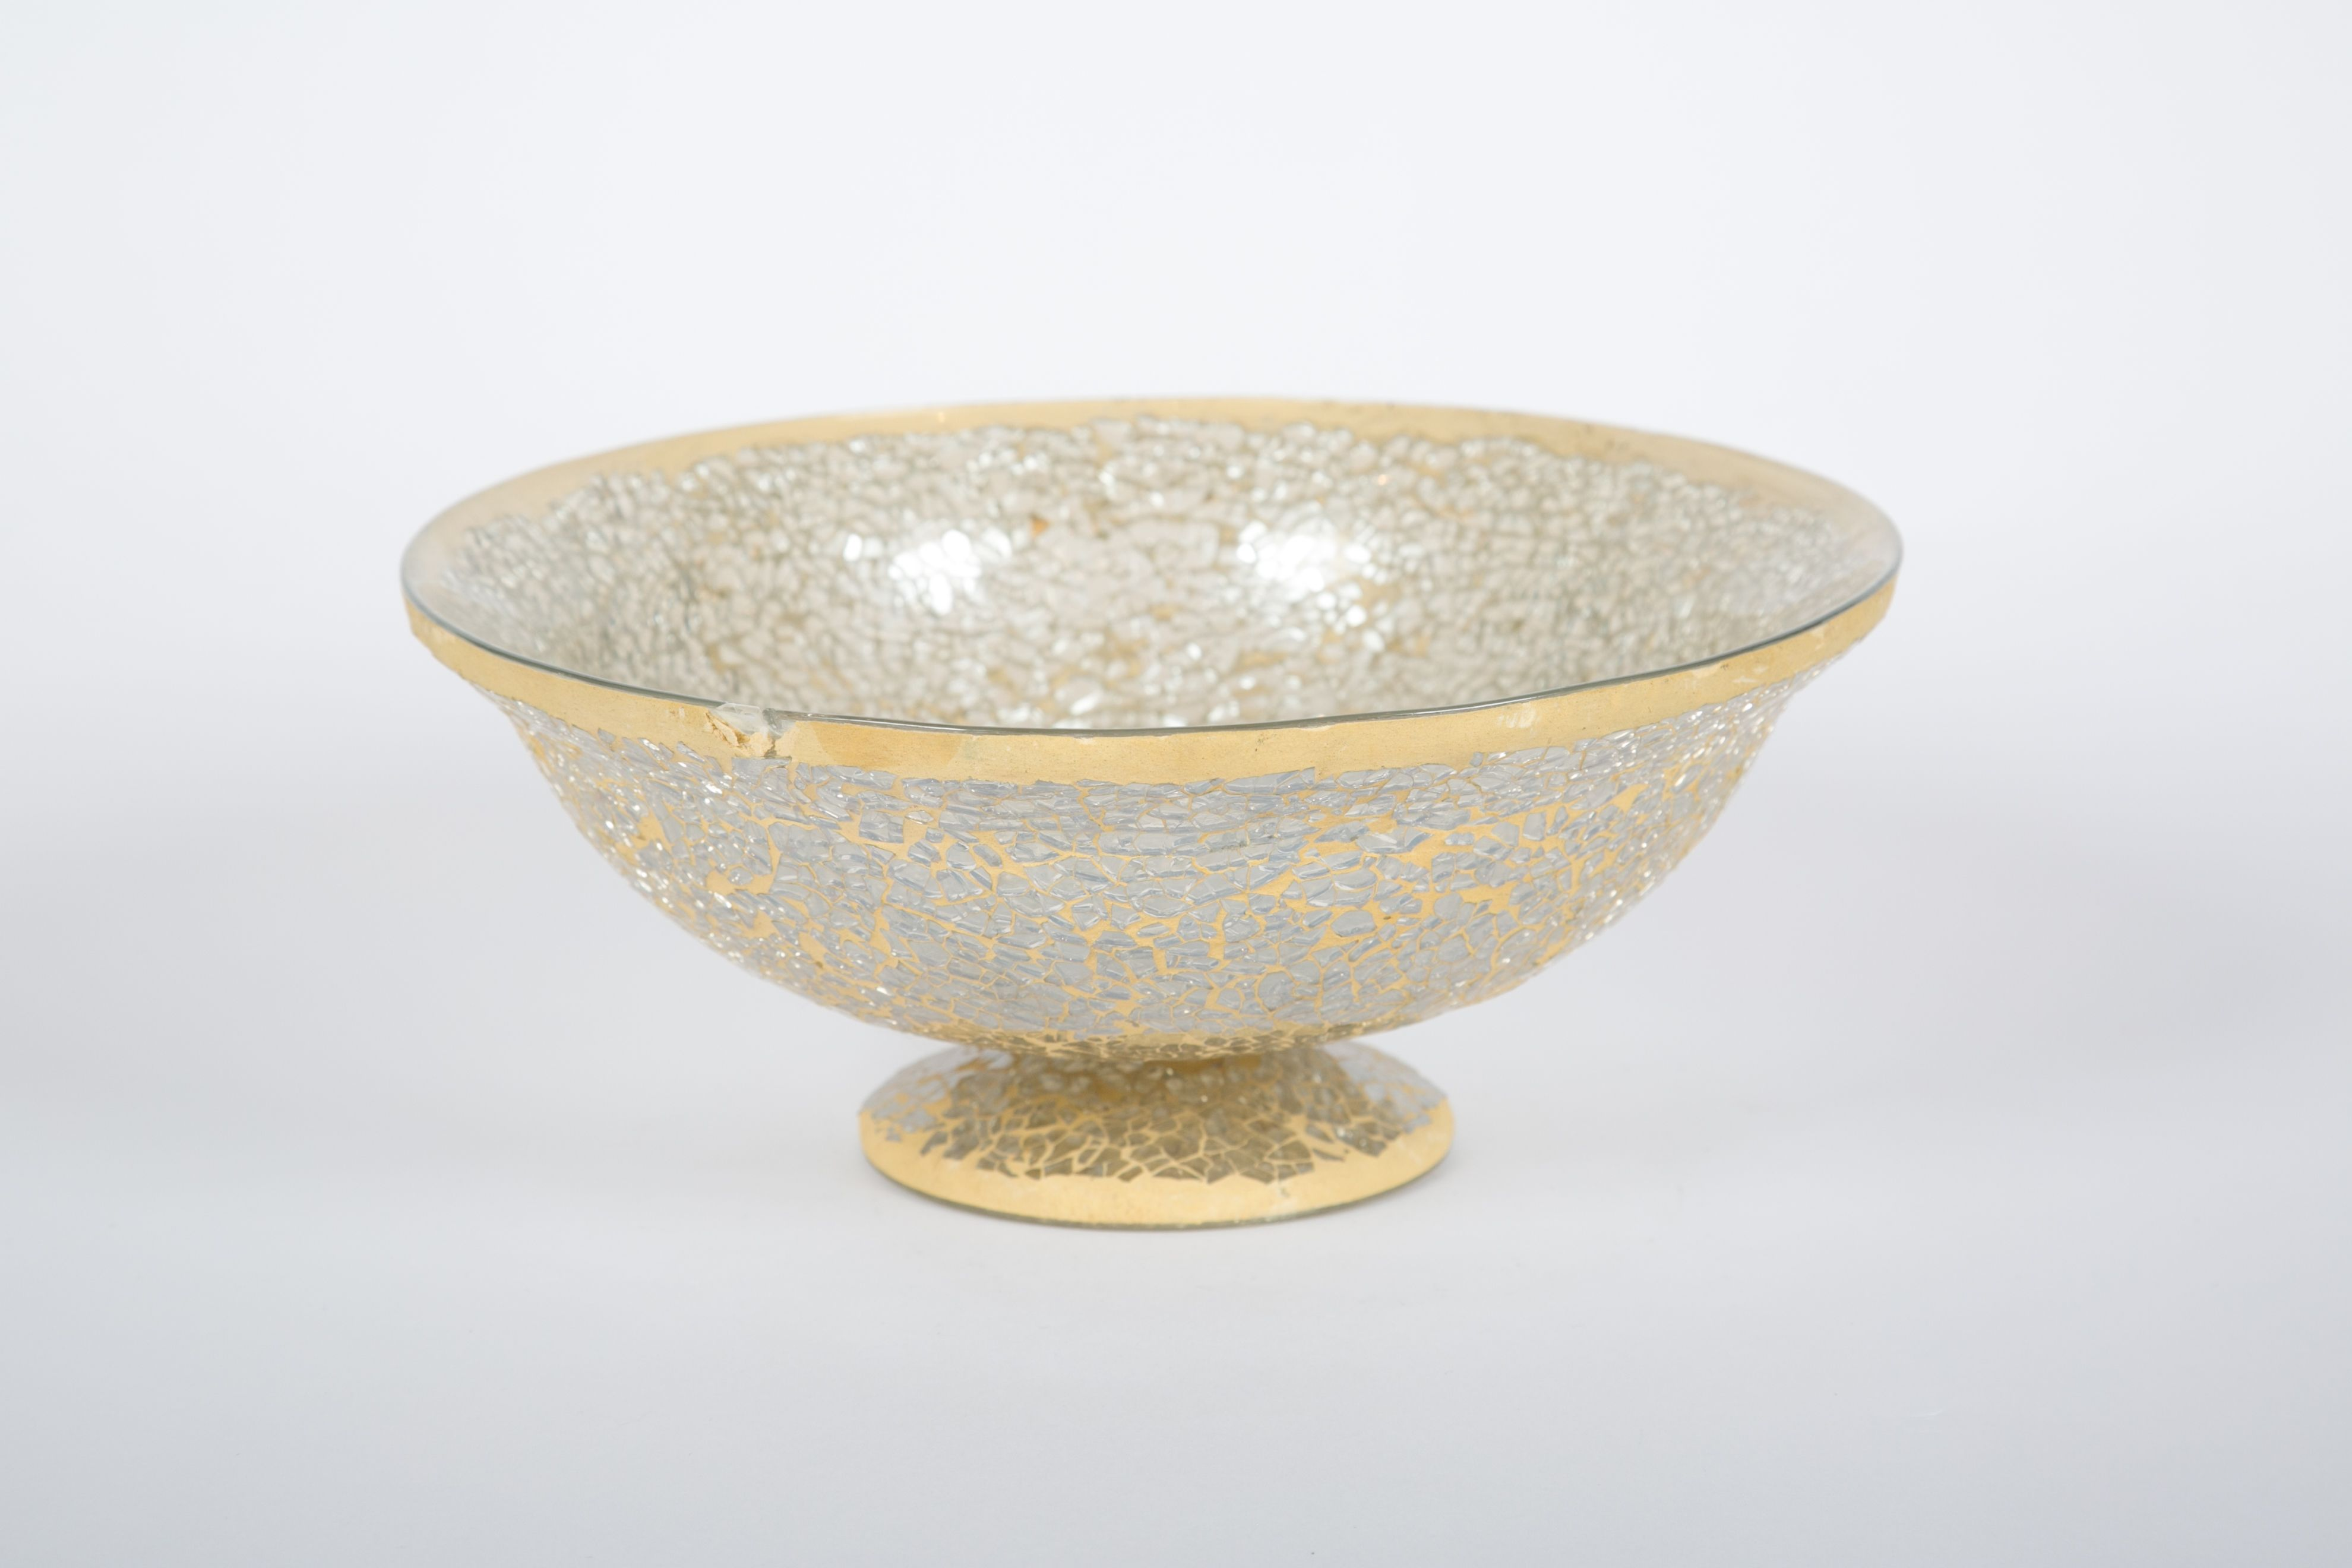 Champagne Cracked Glass Low Bowls have 4 Hill country